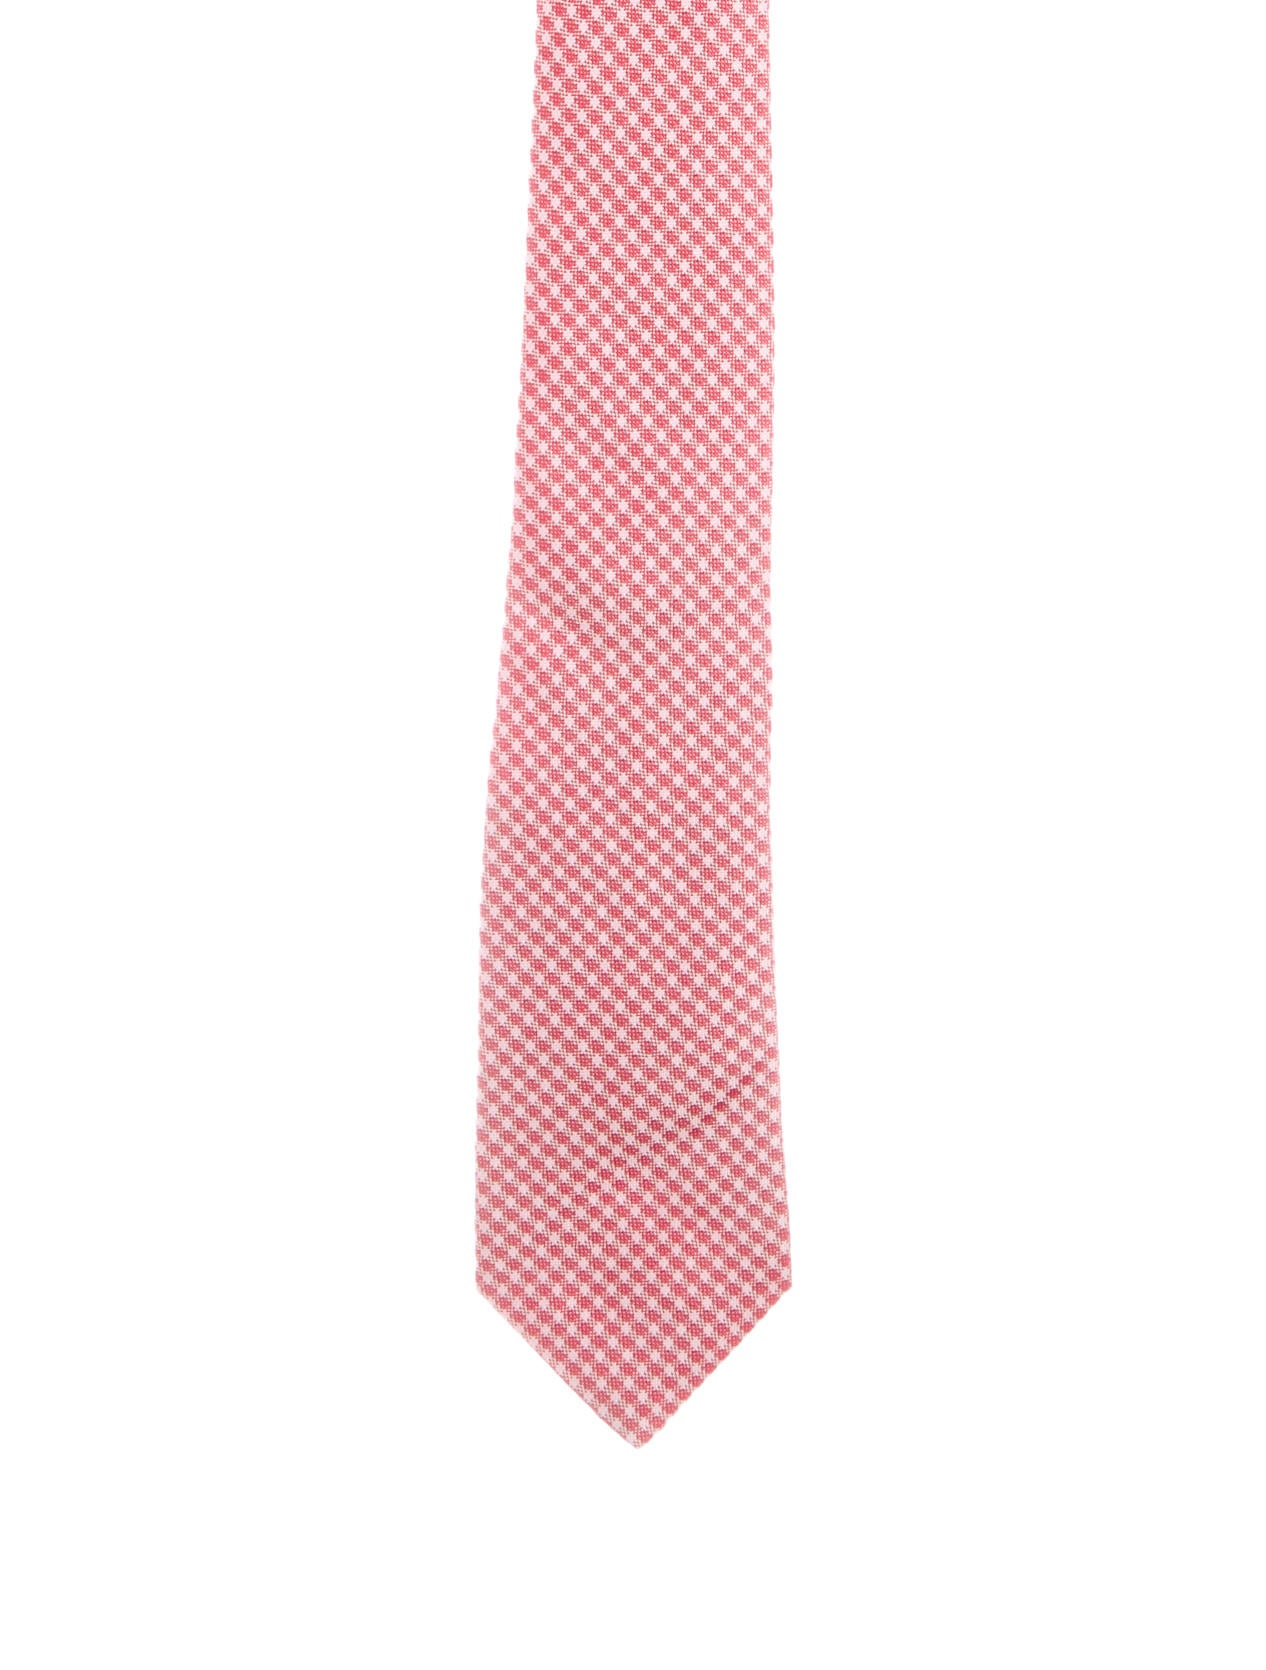 Find great deals on eBay for Skinny Silk Tie in Ties and Men's Accessories. Shop with confidence.